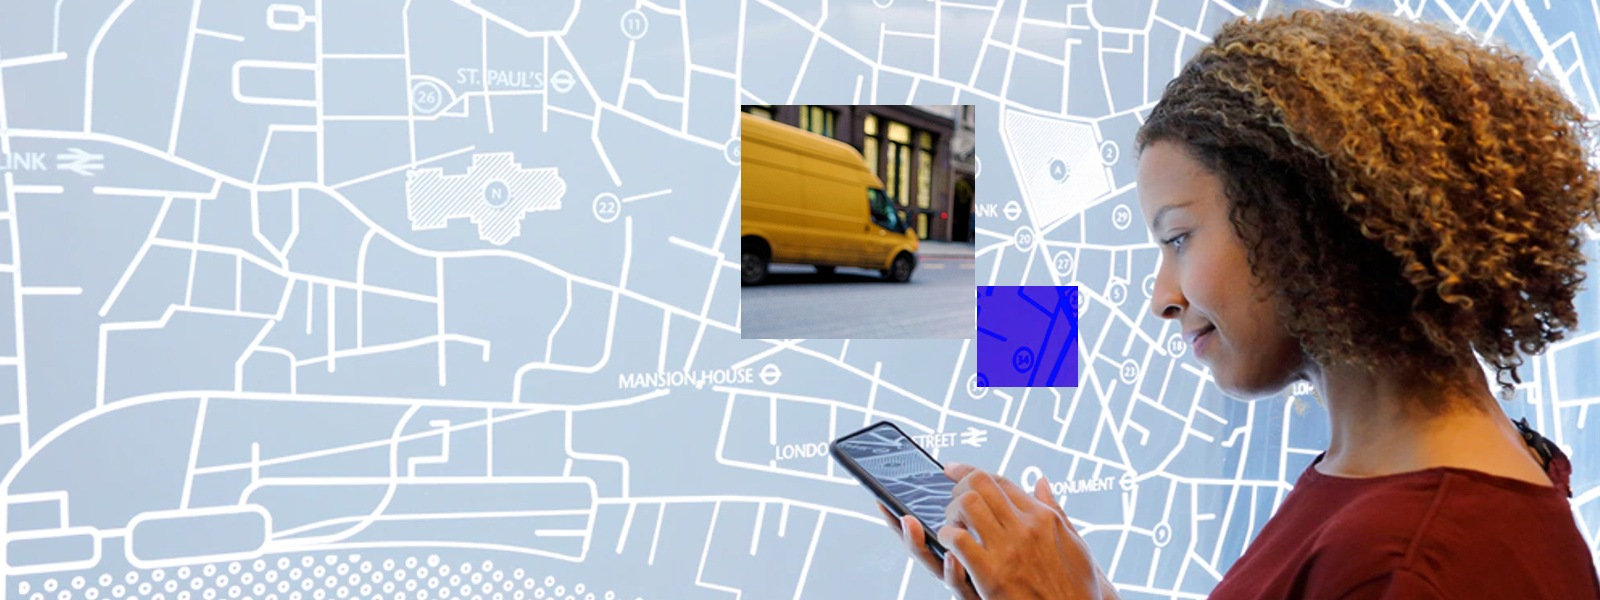 Woman uses a mobile device in front of a map display with an abstract overlay